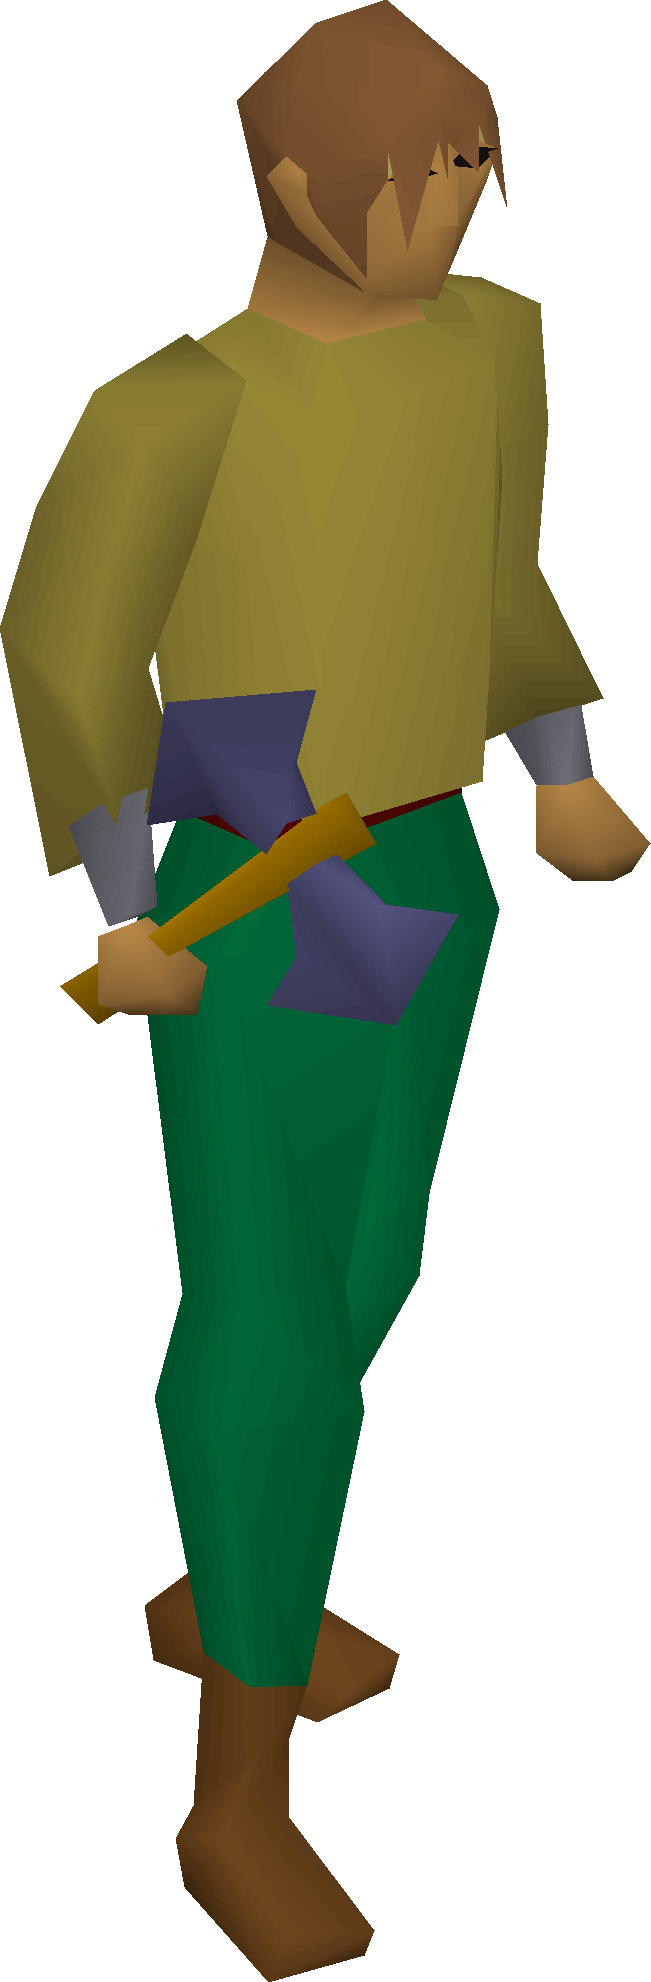 File:Mithril thrownaxe equipped.png